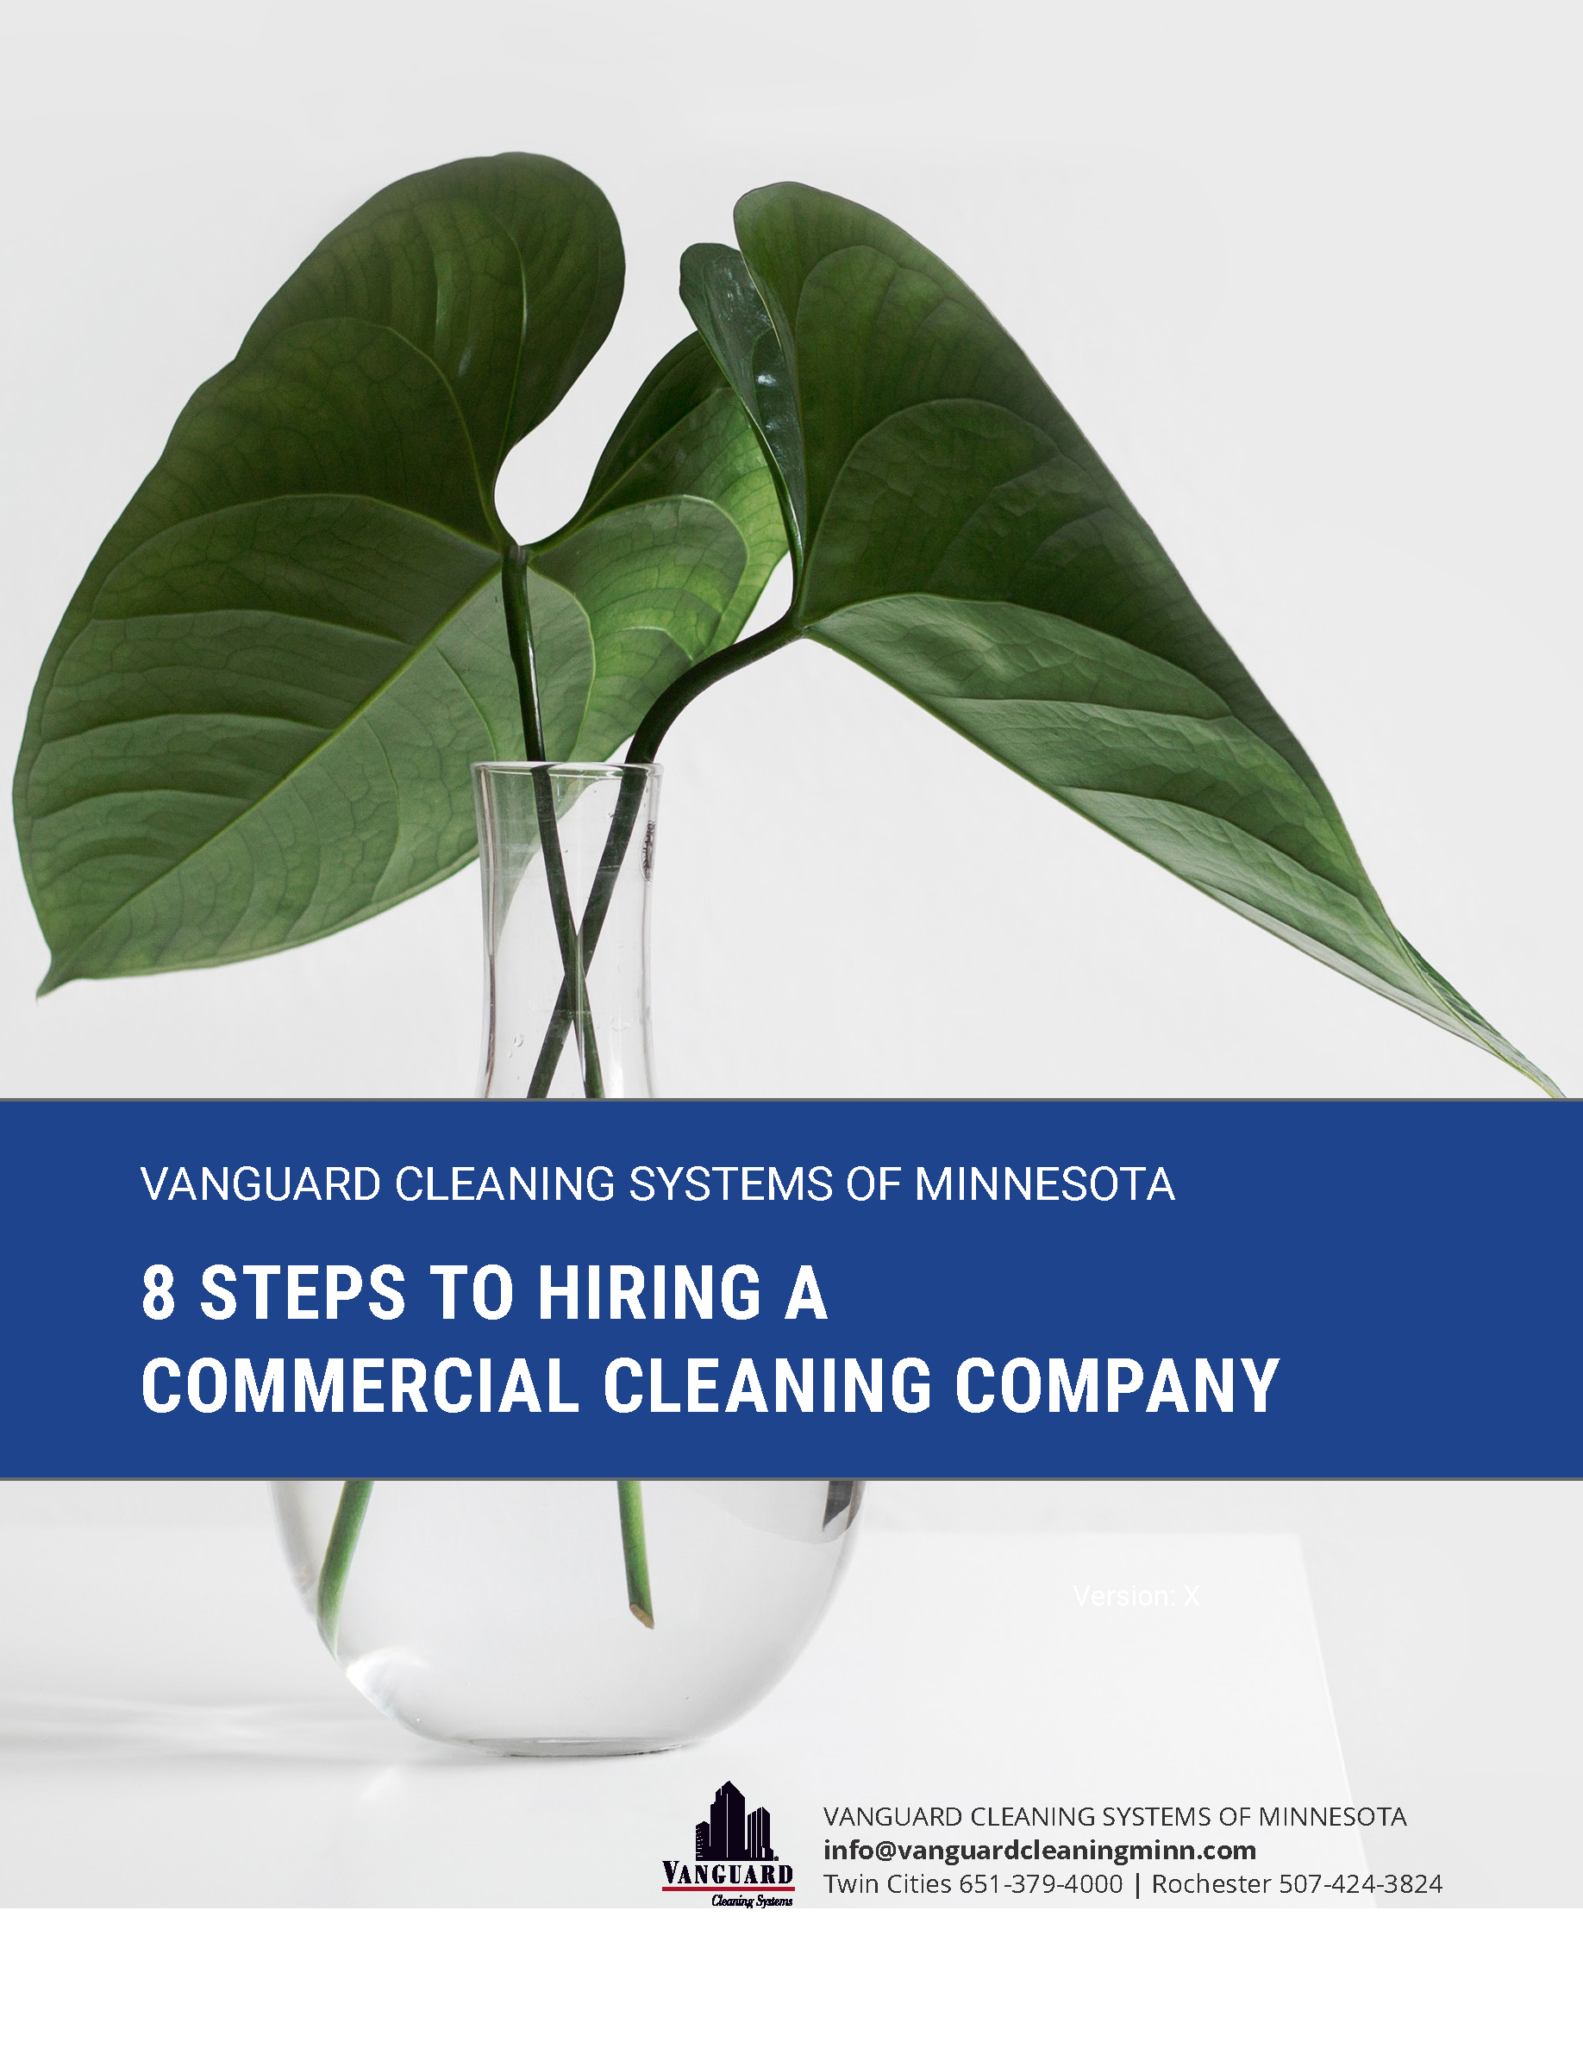 8 Steps to Hiring a Commercial Cleaning Company - PDF Cover